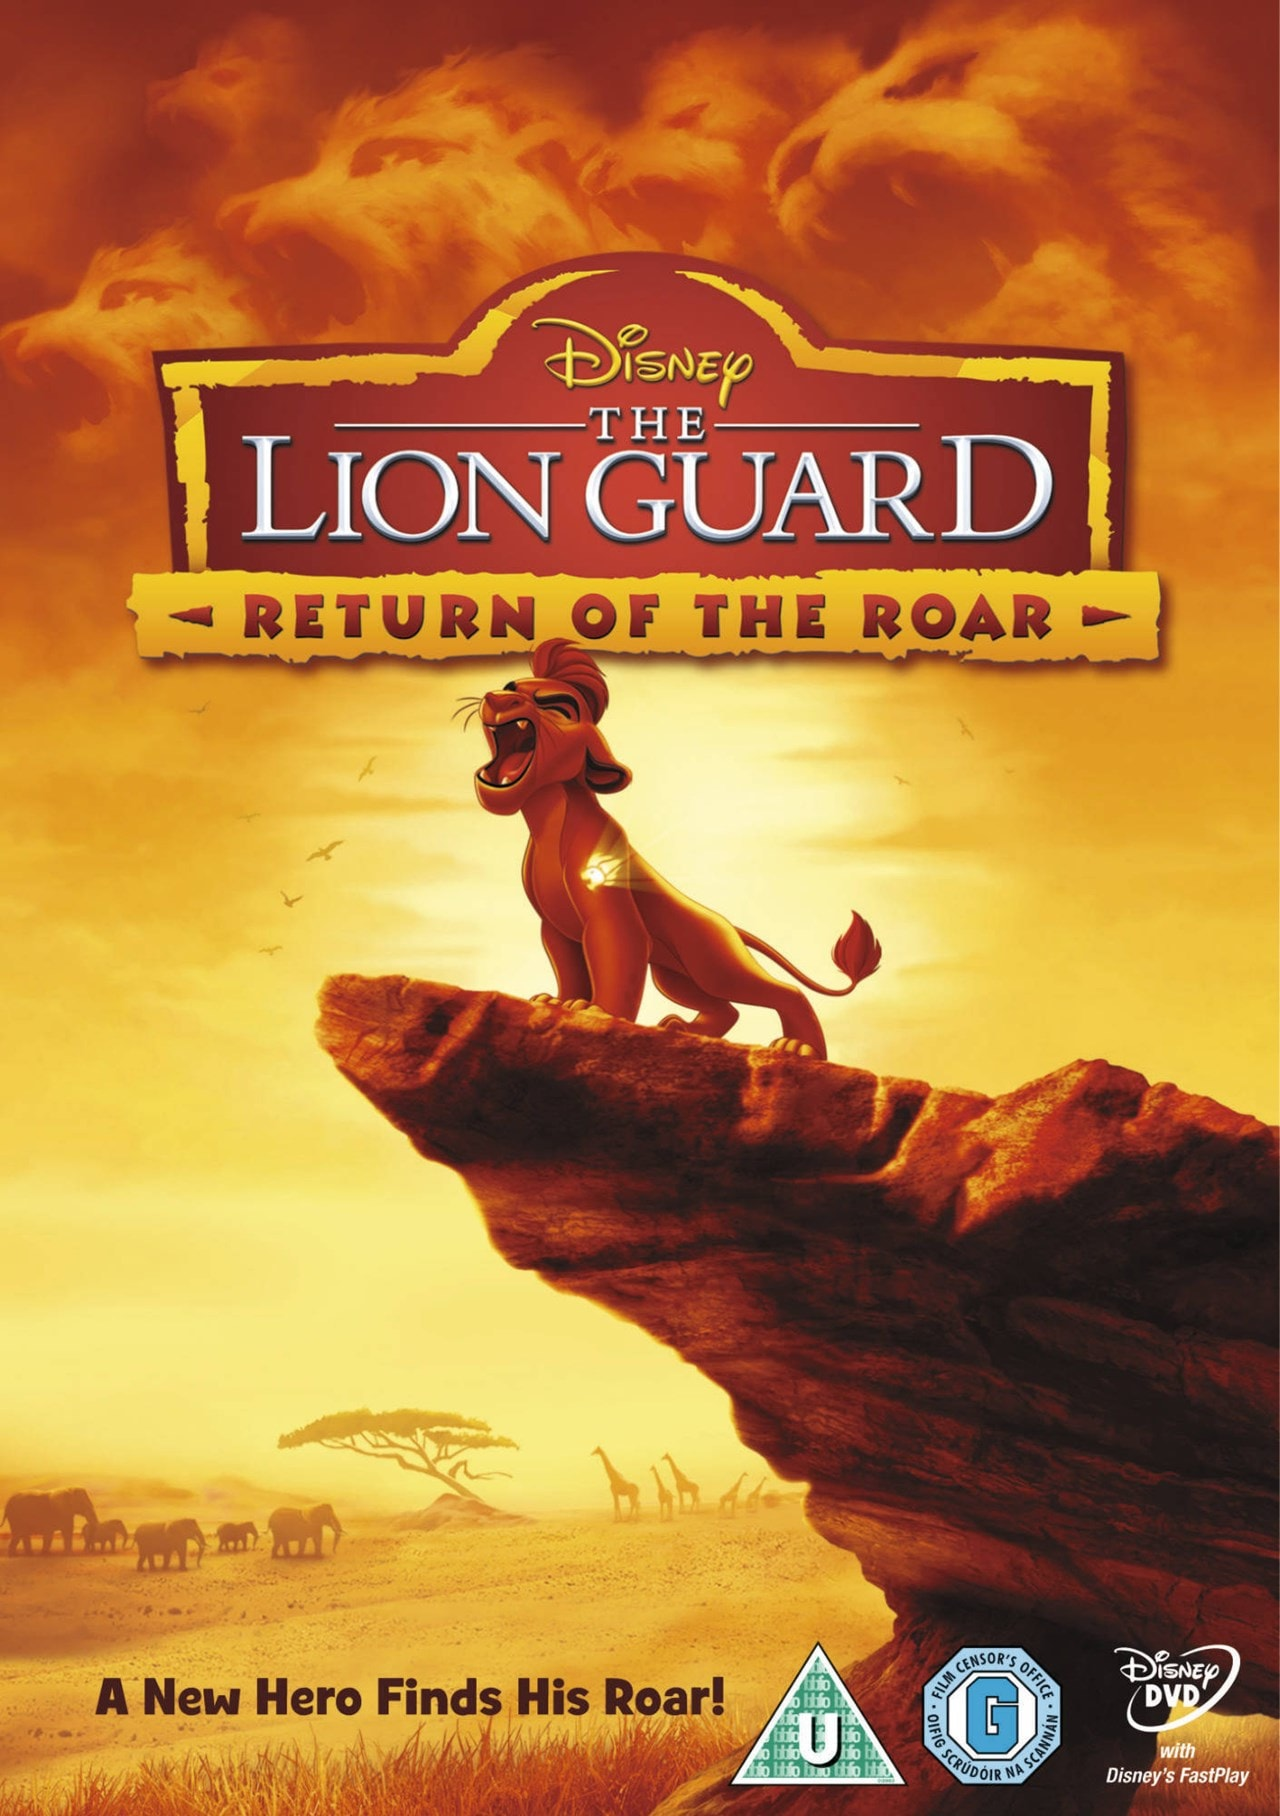 The Lion Guard - Return of the Roar - 1